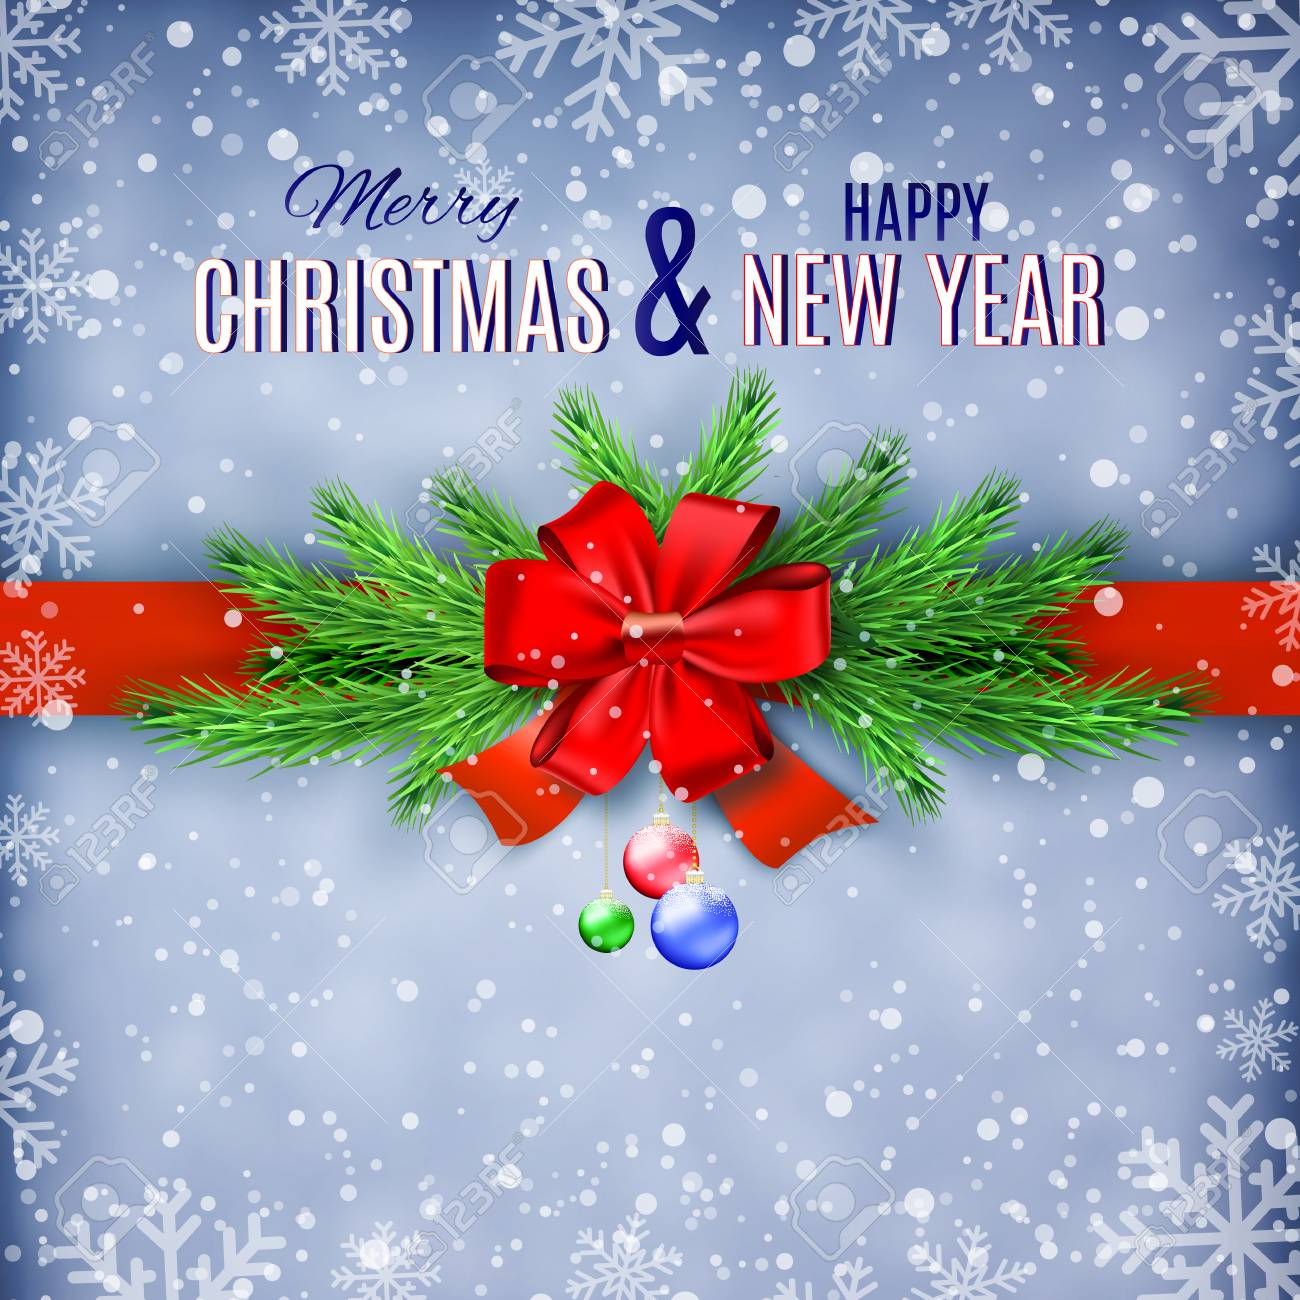 Happy New Year And Merry Christmas Greeting Card Design Vector